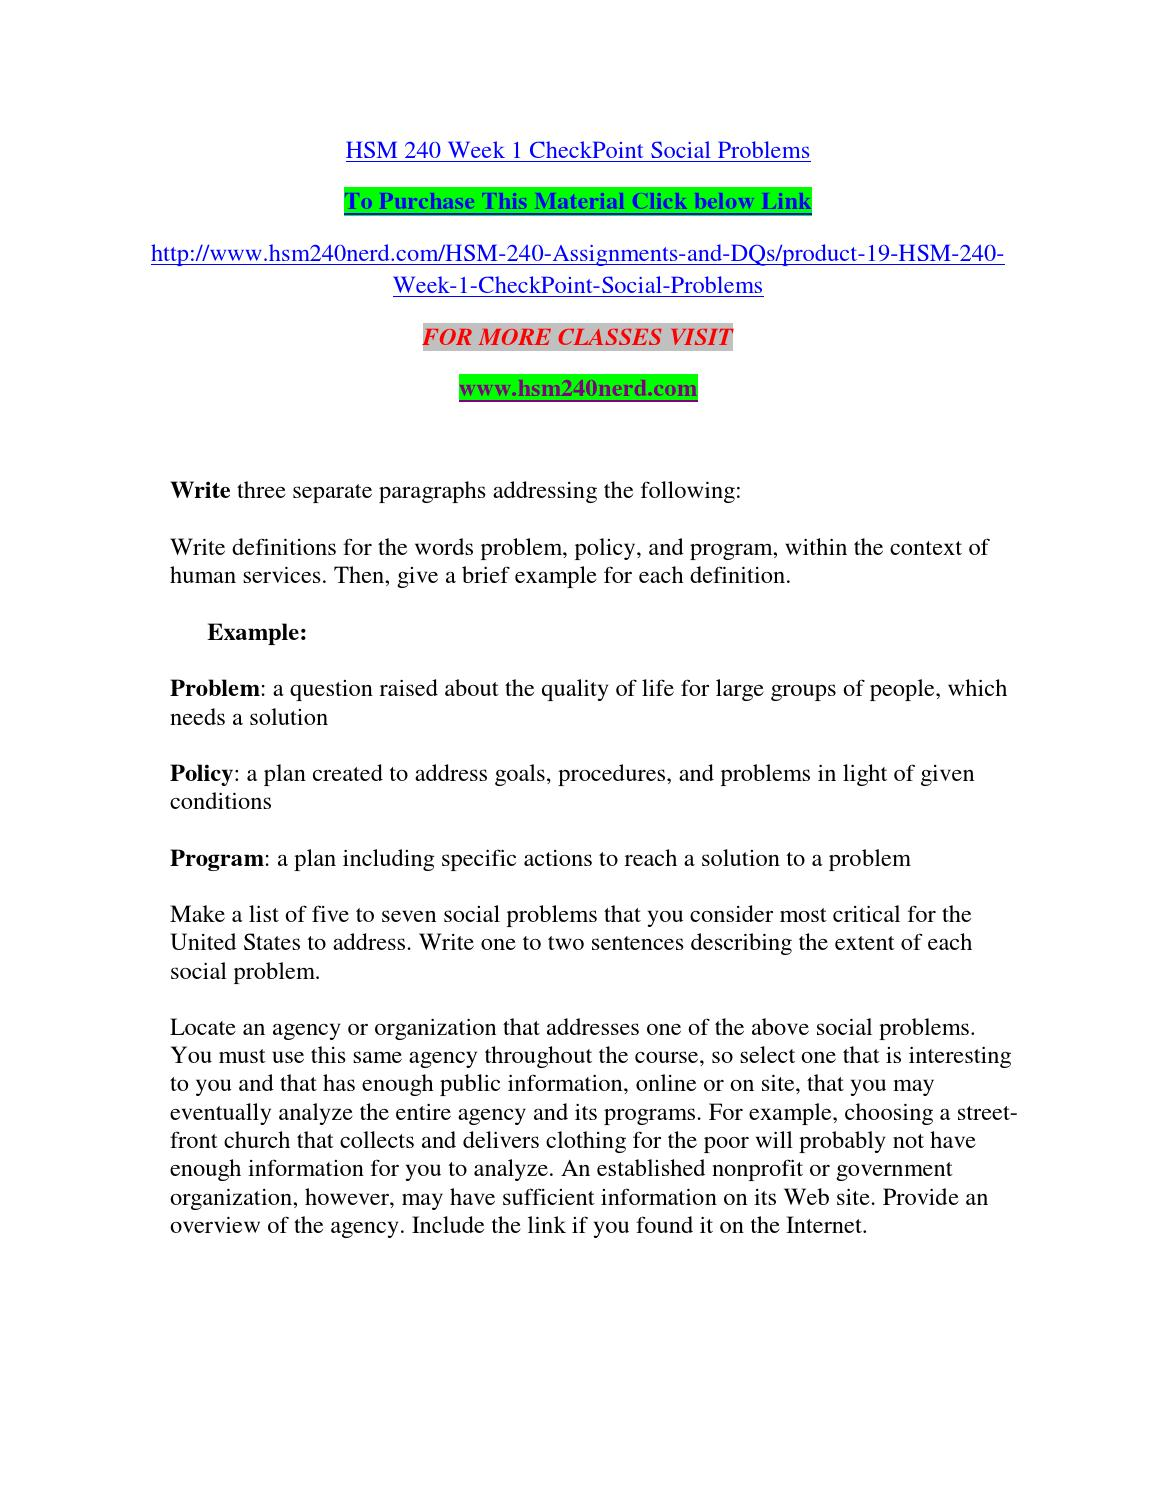 hsm 240 week 1 checkpoint social problems by austinamm - issuu